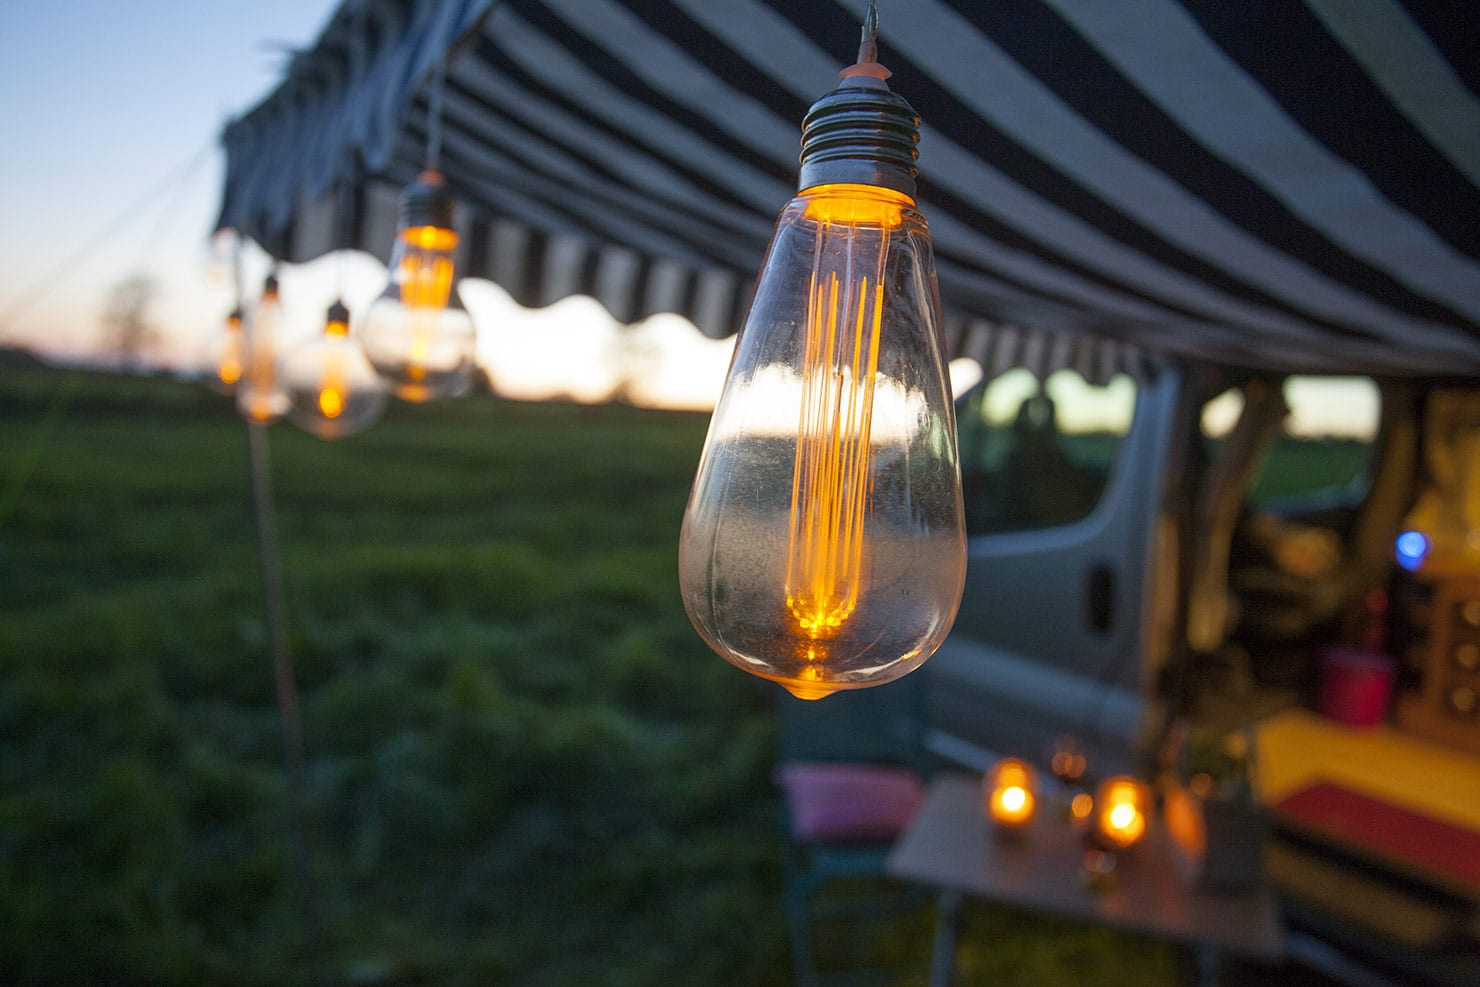 Retro solar lighting to set the scene for alfresco dining or simply with a glass of wine.